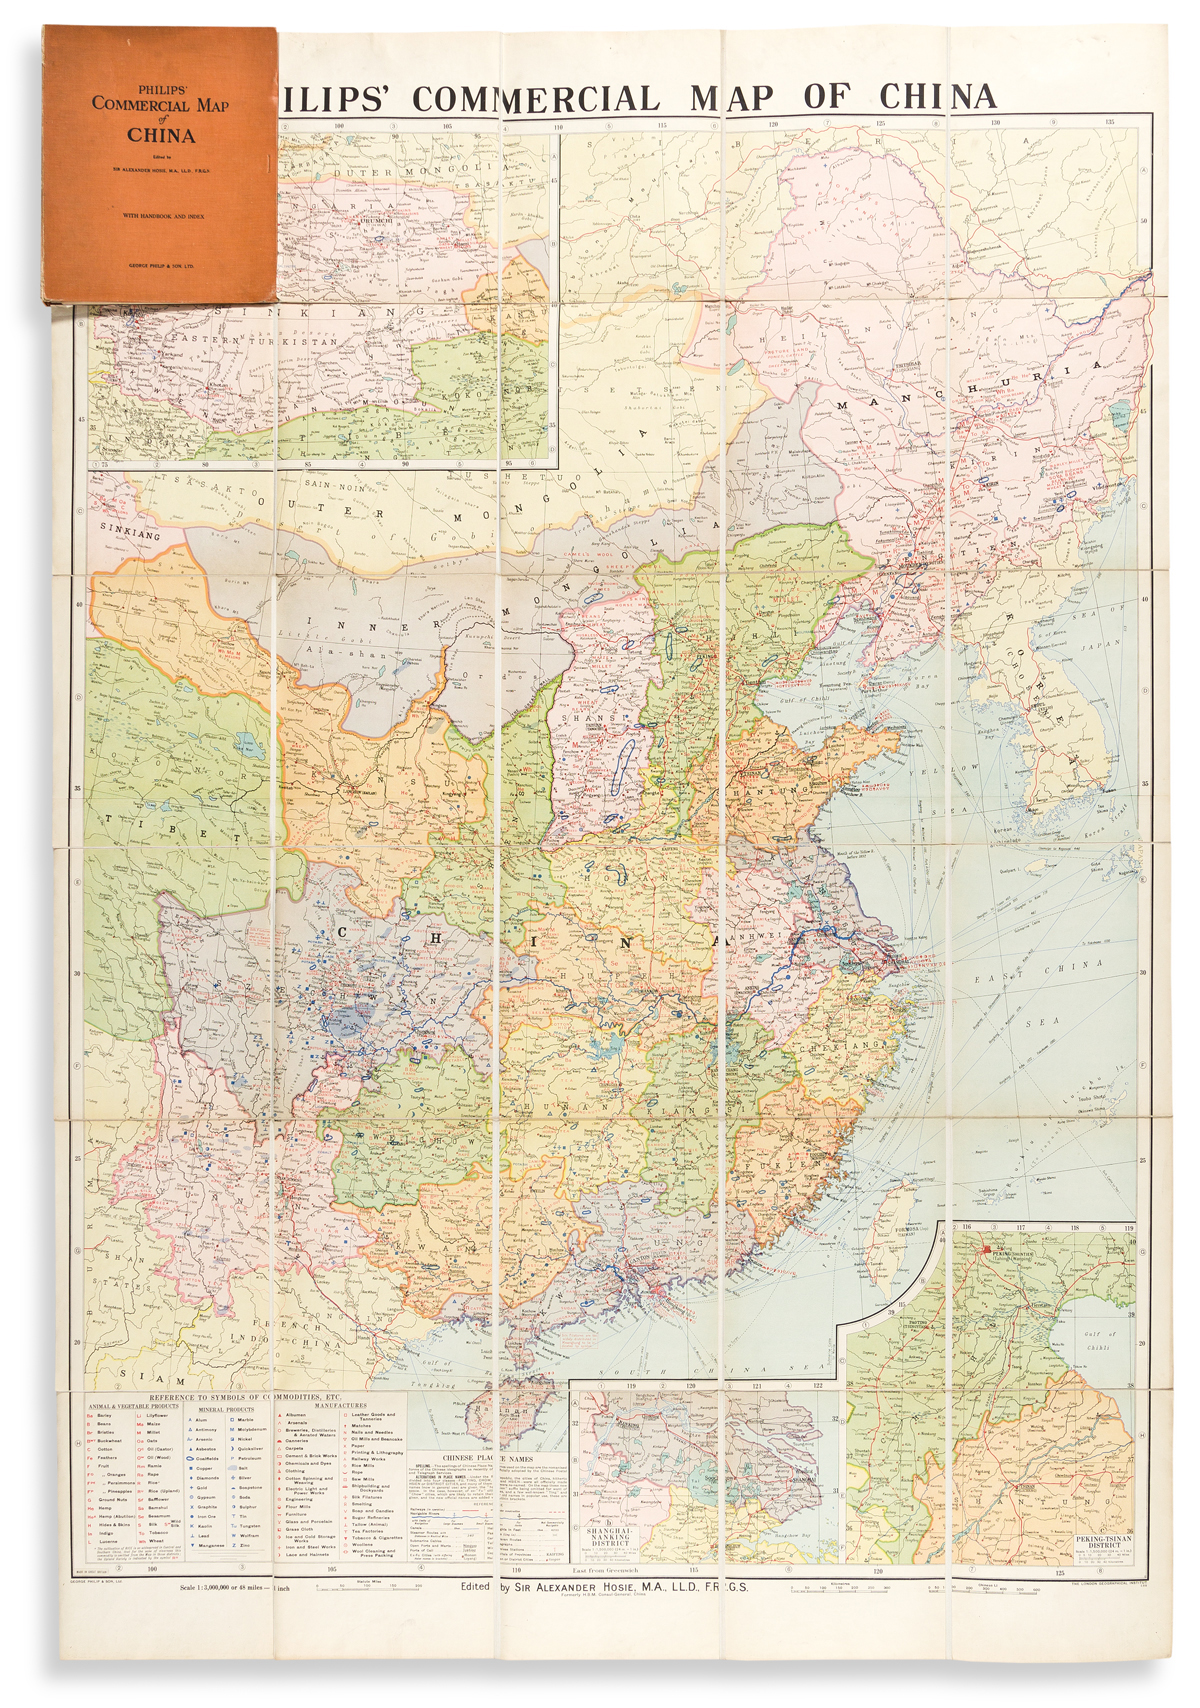 (CHINA.) George Philip & Son. Philips Commercial Map of China.